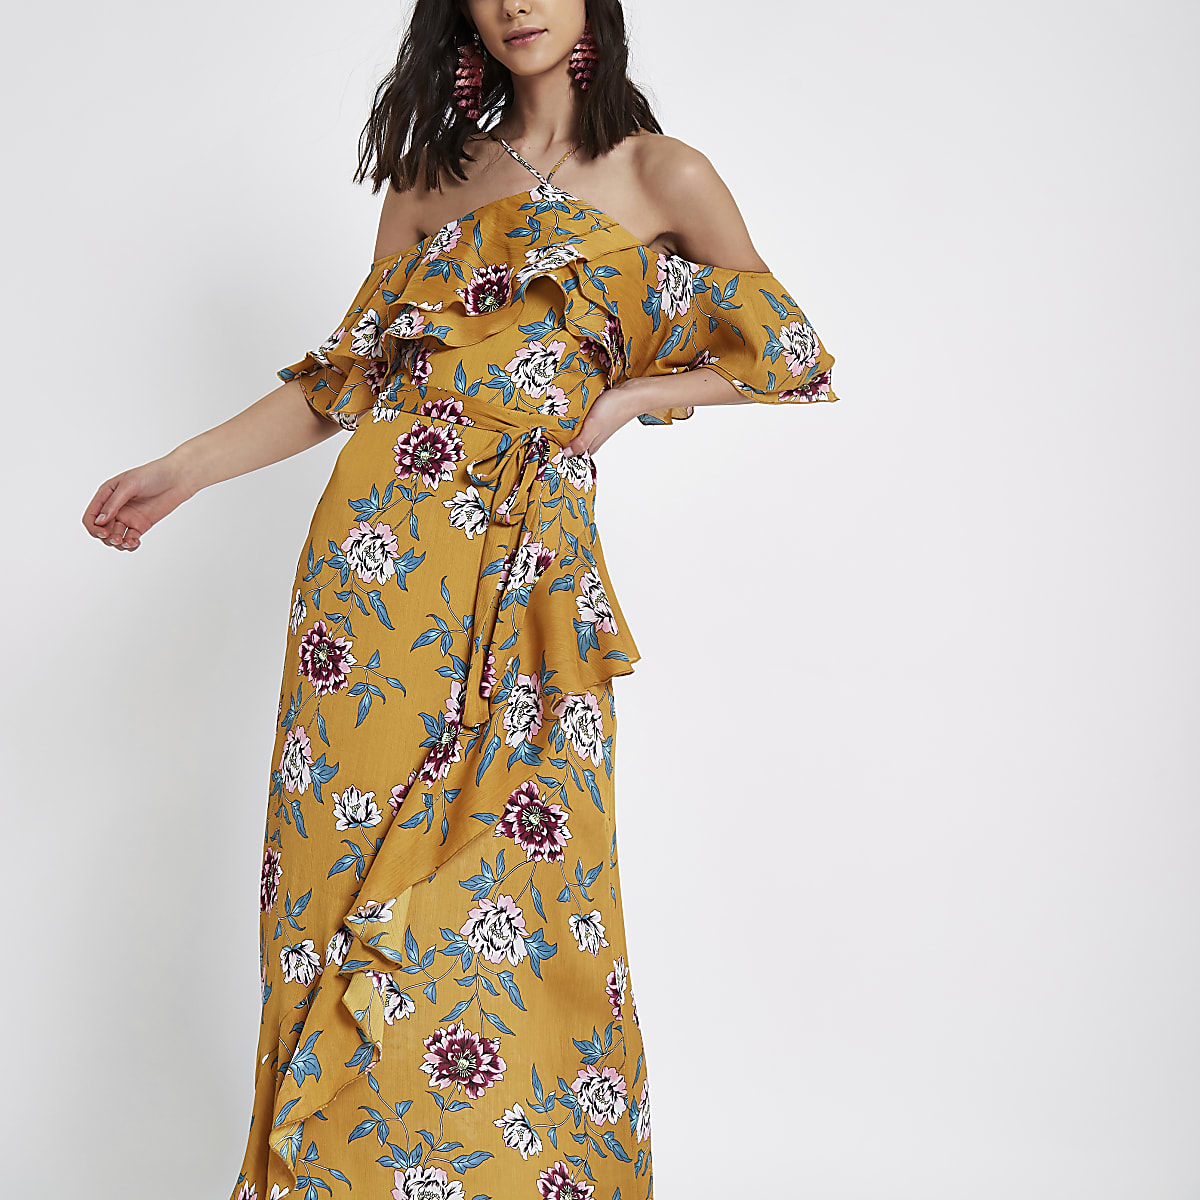 78c182ad9 Yellow floral print cold shoulder maxi dress - Maxi Dresses - Dresses -  women